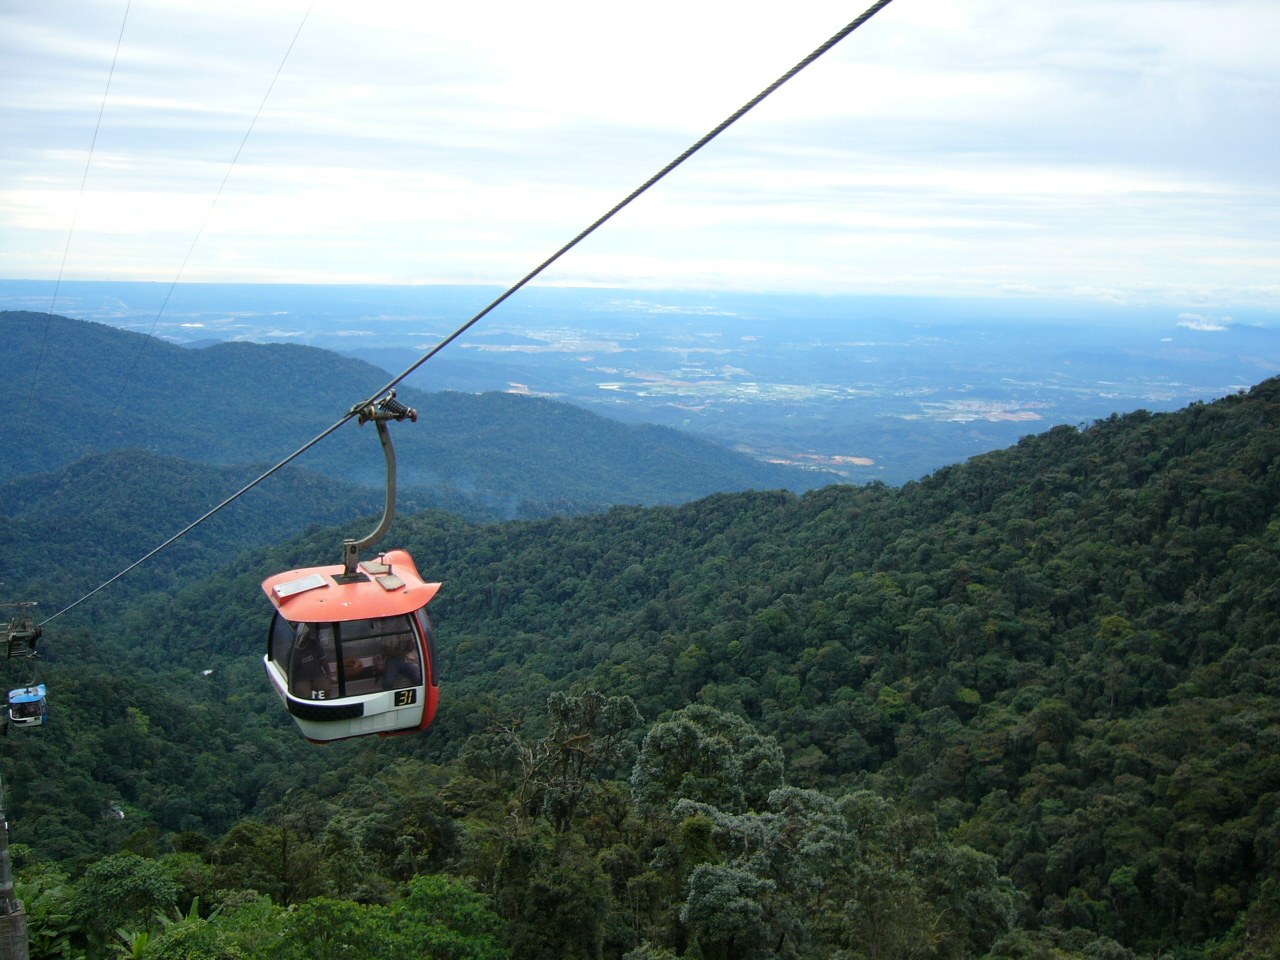 Image 29. [Skyway to the hotel at Highlands Hotel of the ] Genting Highland [Resort,] Malaysia. Photo by Shahnoor Habib Munmun.